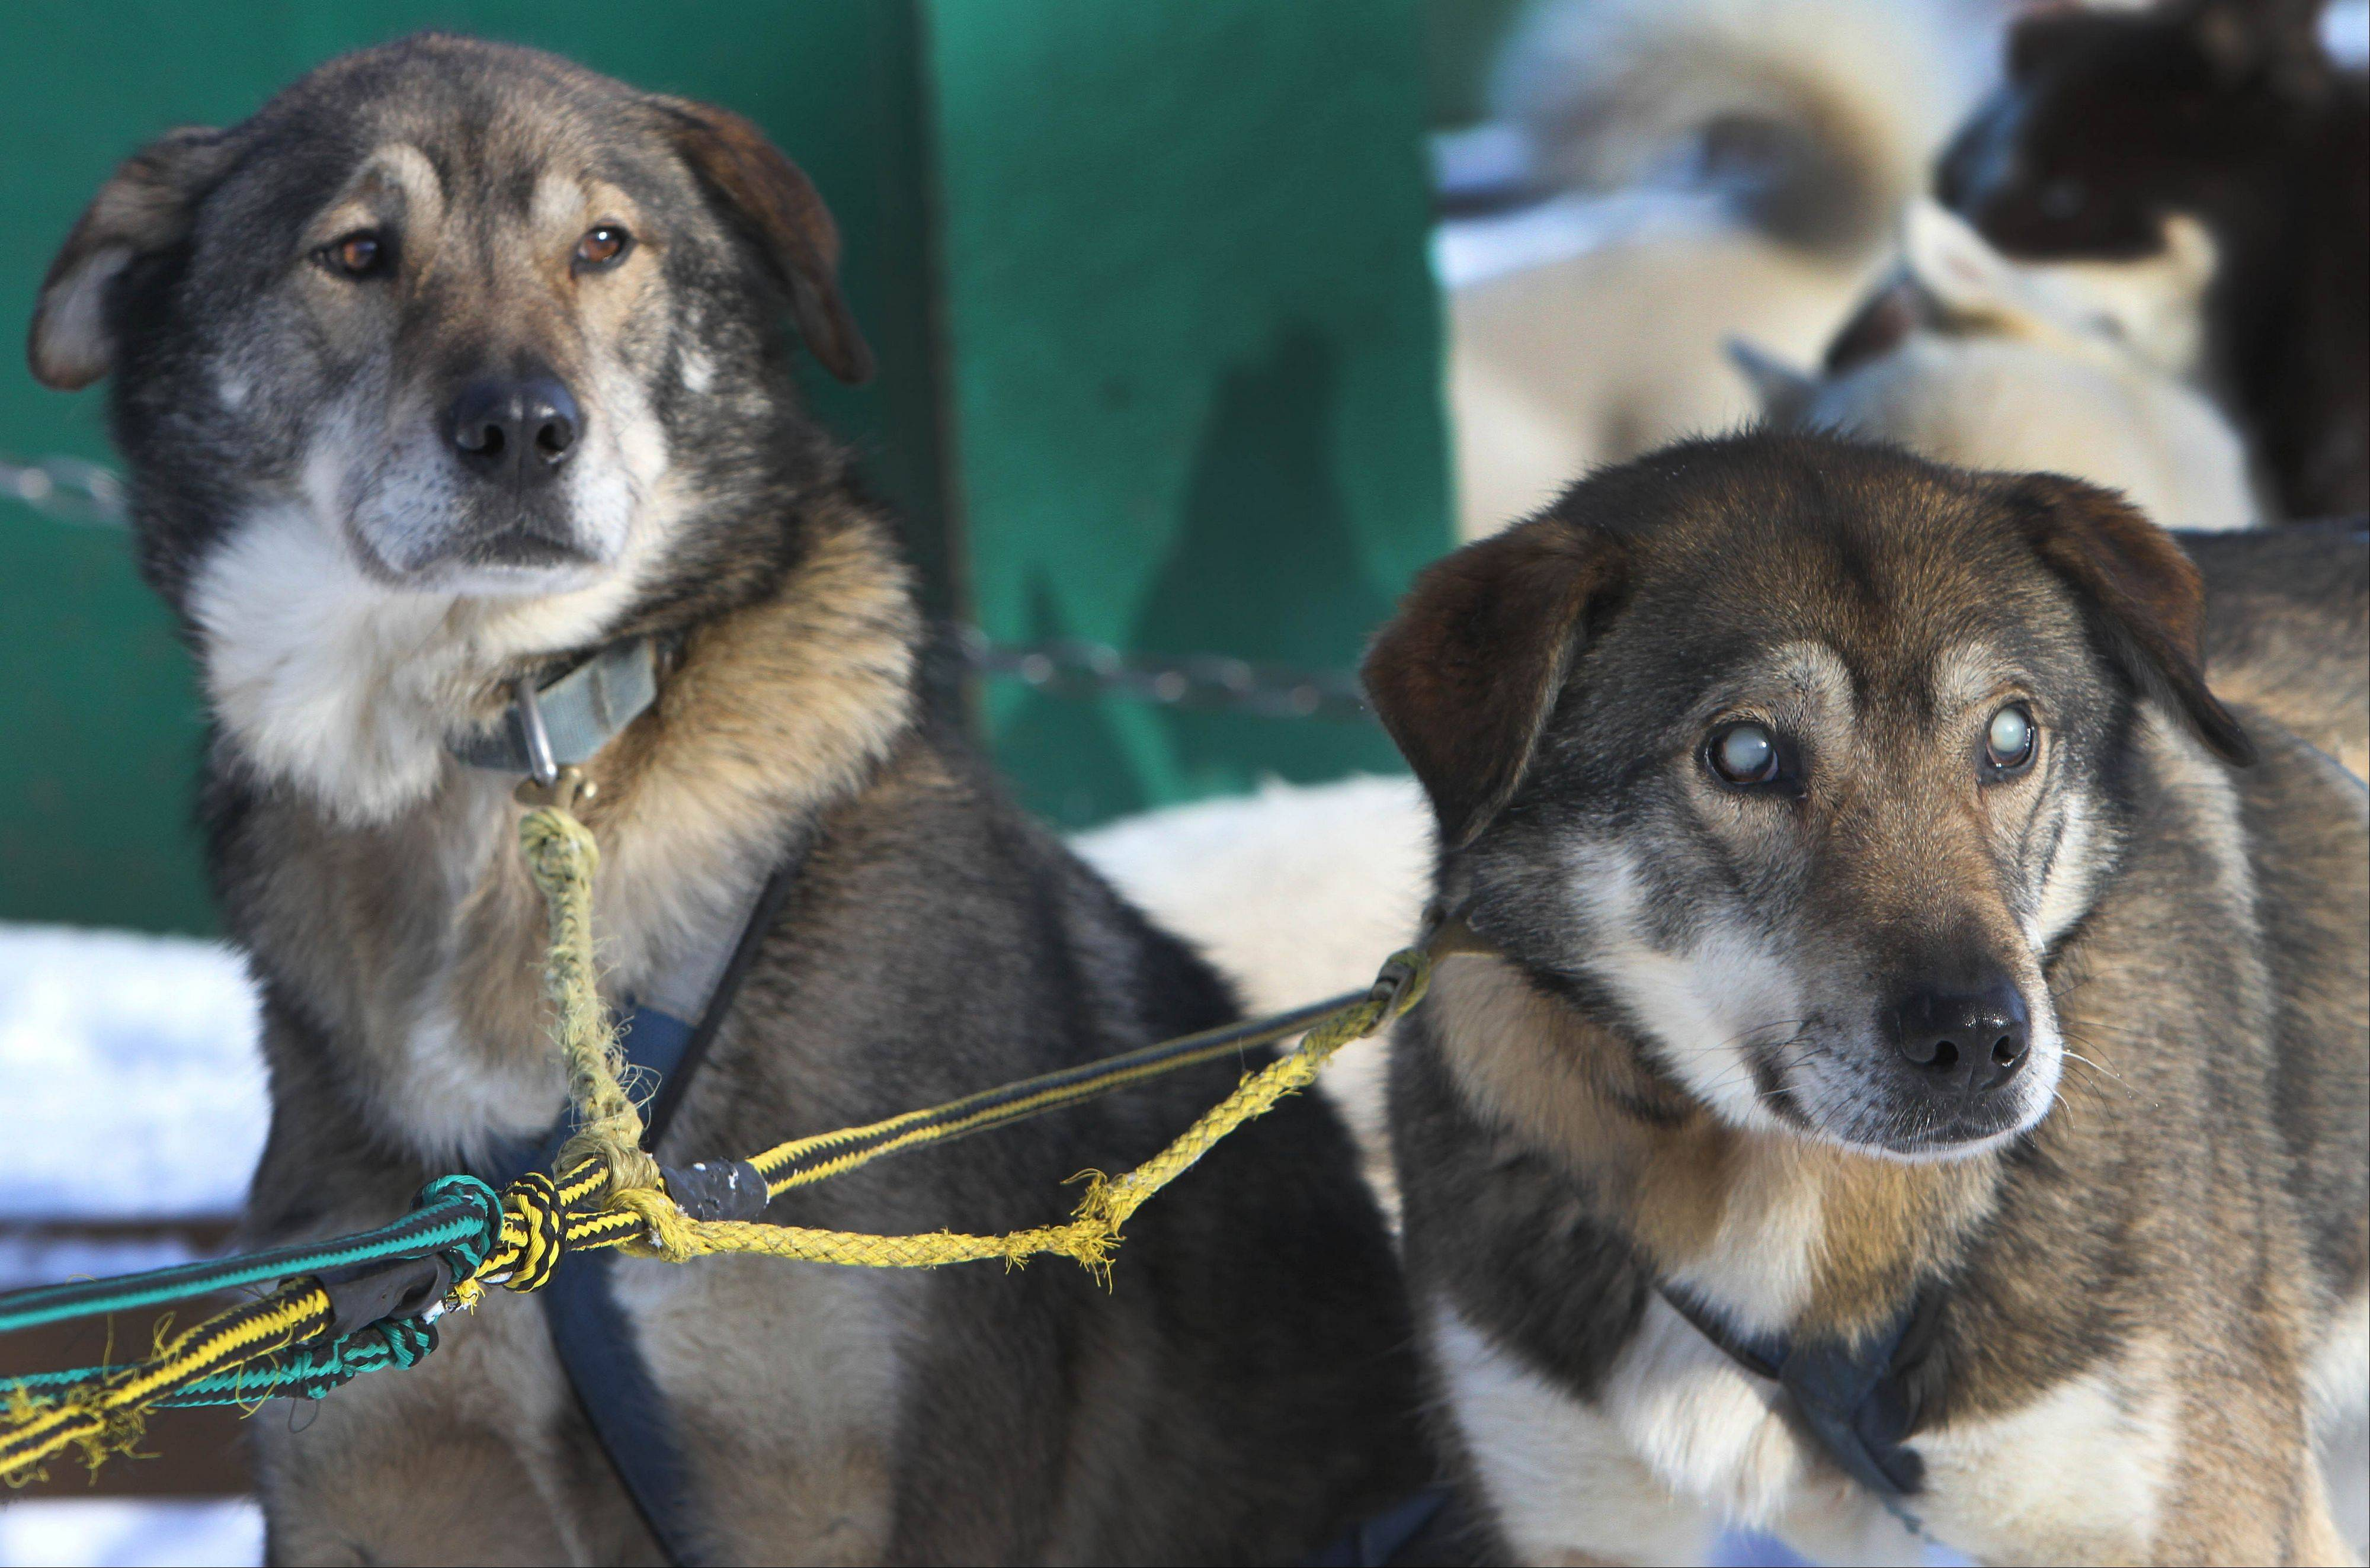 Sled dogs Poncho, left, and his blind brother Gonzo are hooked up for a run at the Muddy Paw Sled Dog Kennel, in Jefferson, N.H. Poncho has taken to helping his blind brother on regular runs.